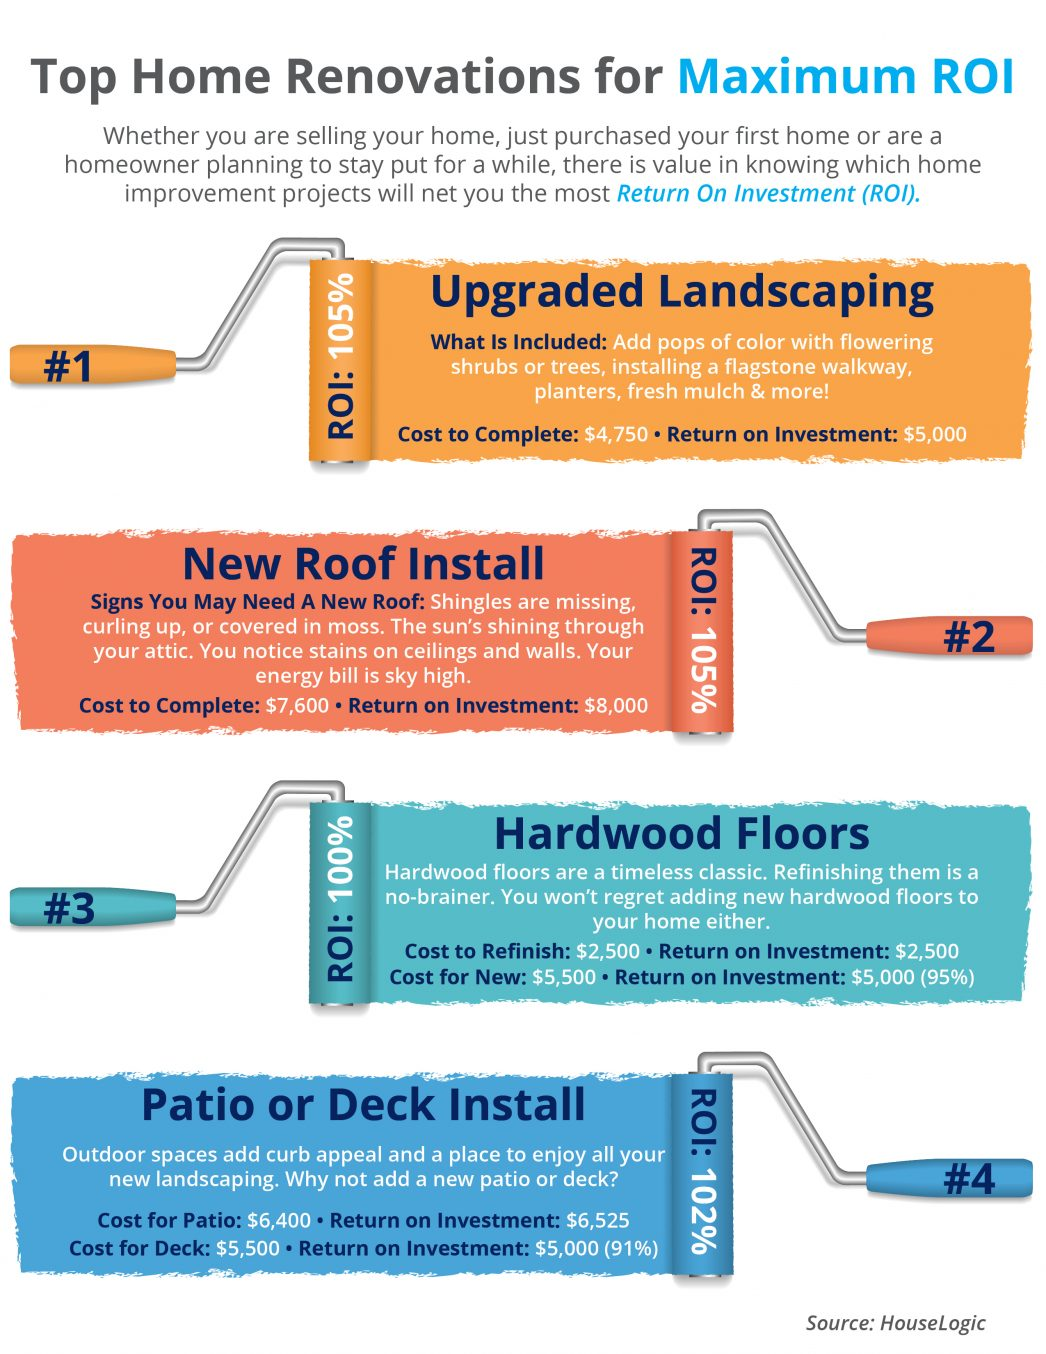 Top 5 Home Improvements for best ROI